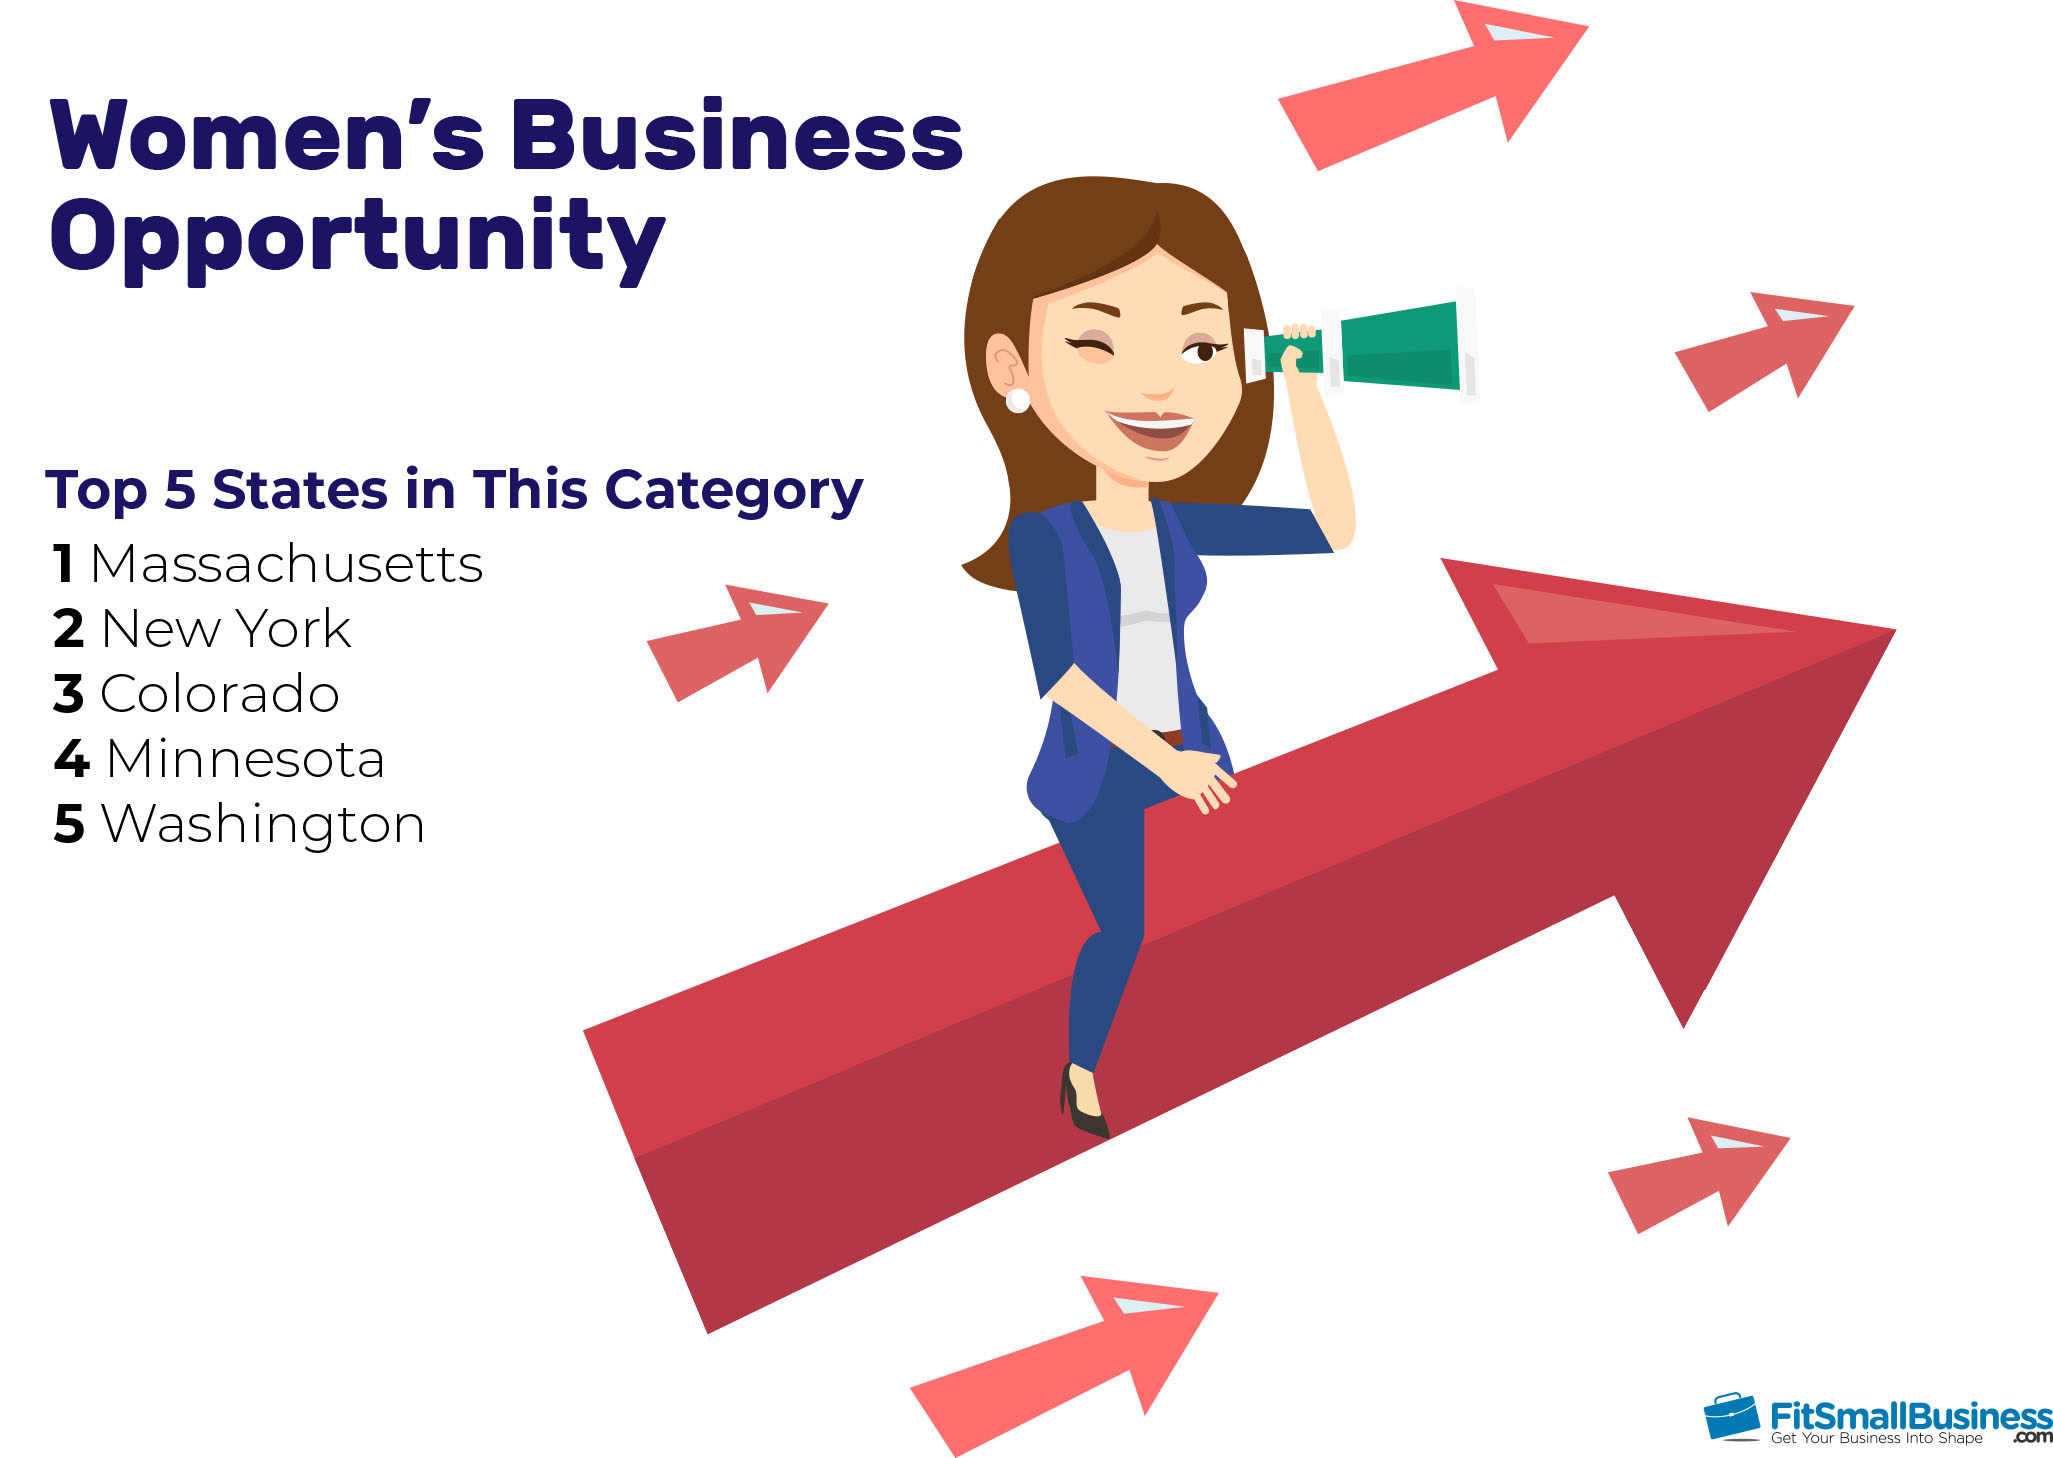 Women's Business Opportunity